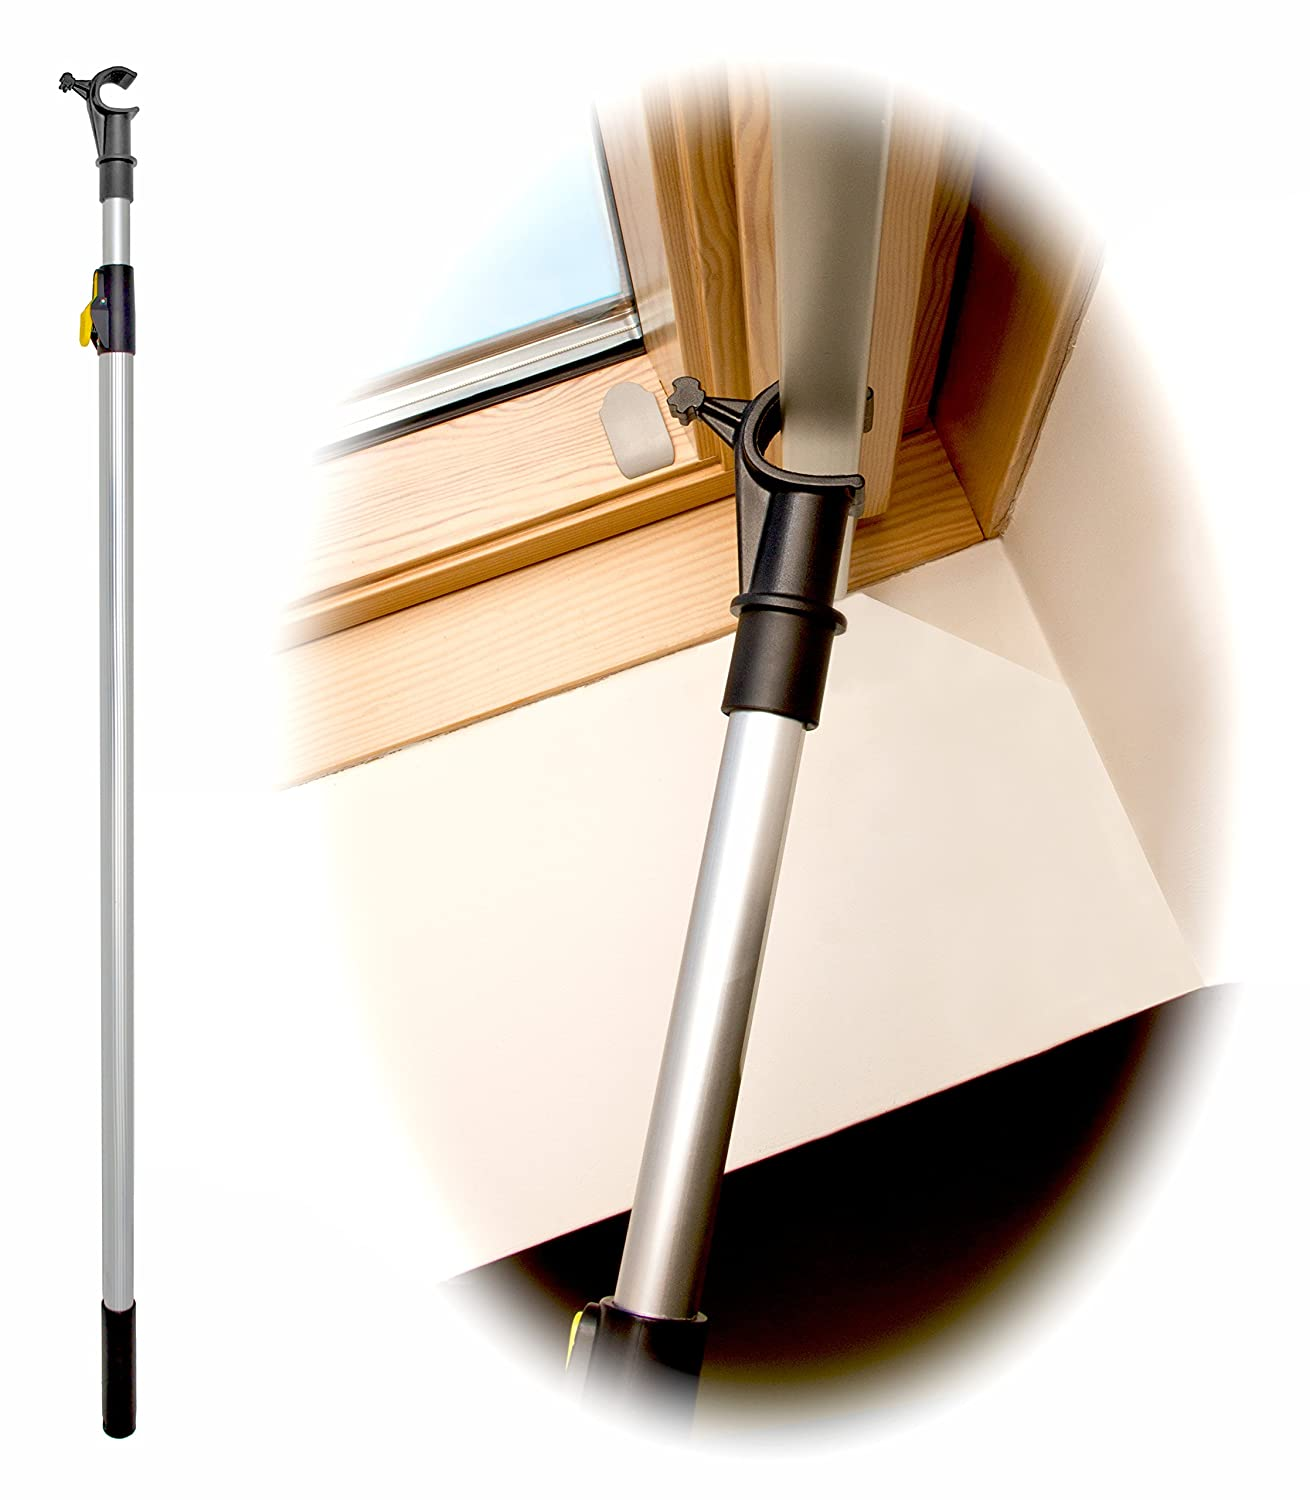 Winhux 174 3m Telescopic Pole Designed To Control Velux 174 Roof